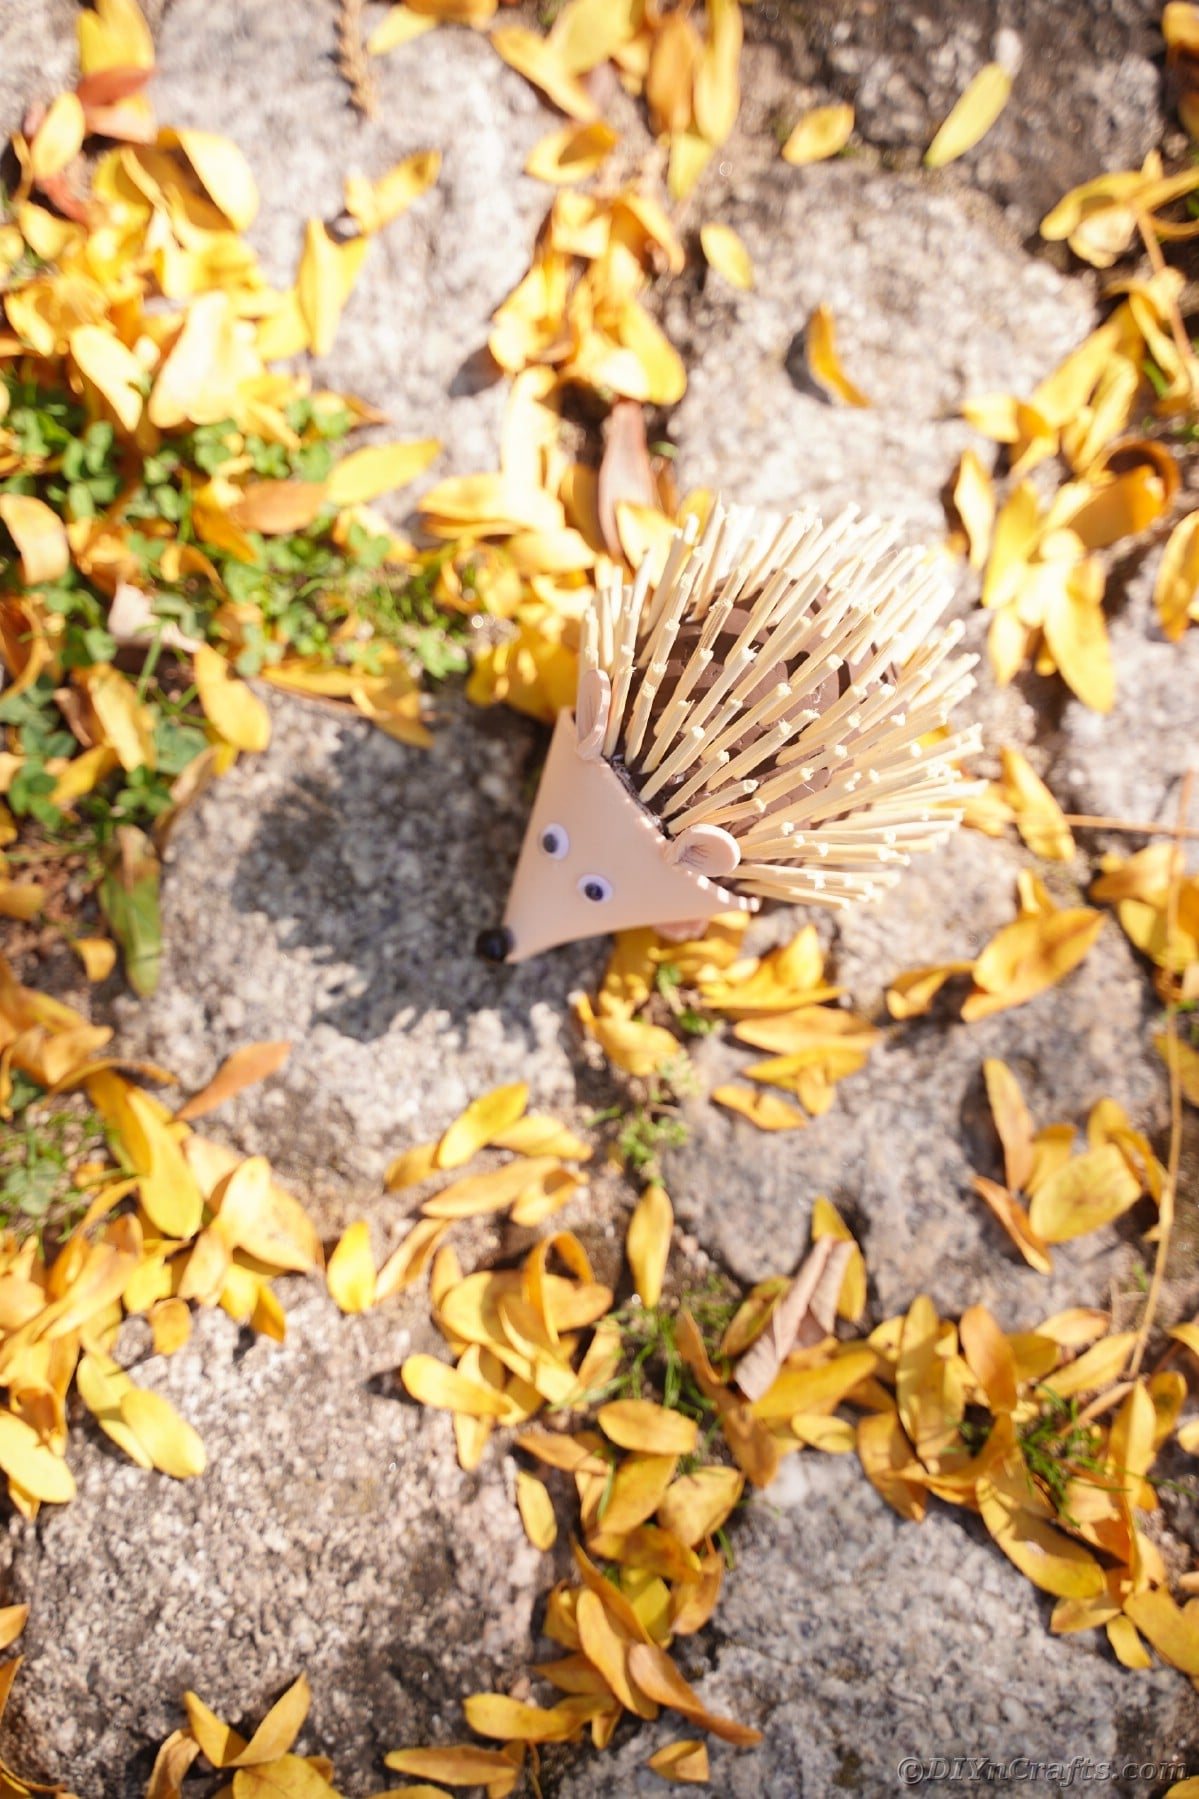 Foam hedgehog laying on cobblestone and yellow leaves